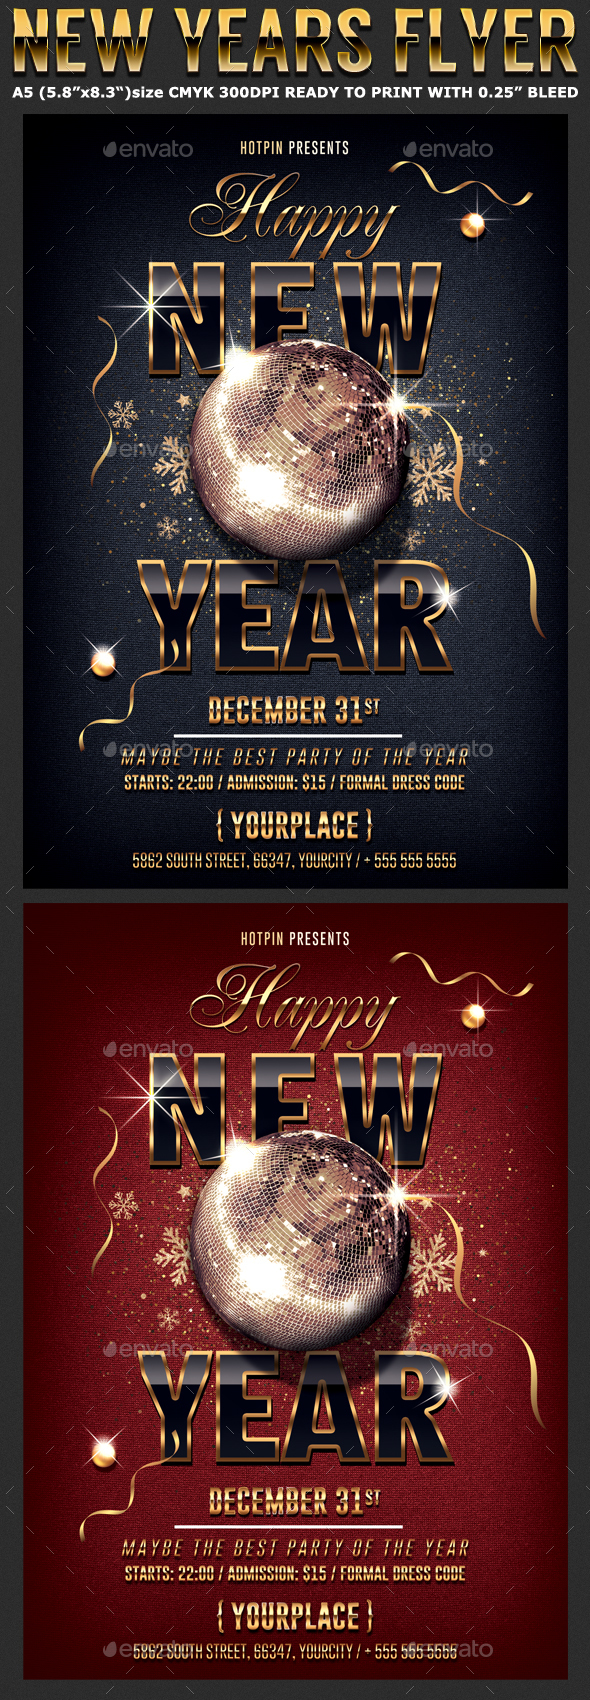 GraphicRiver Classy New Year Party Flyer Template 20970229